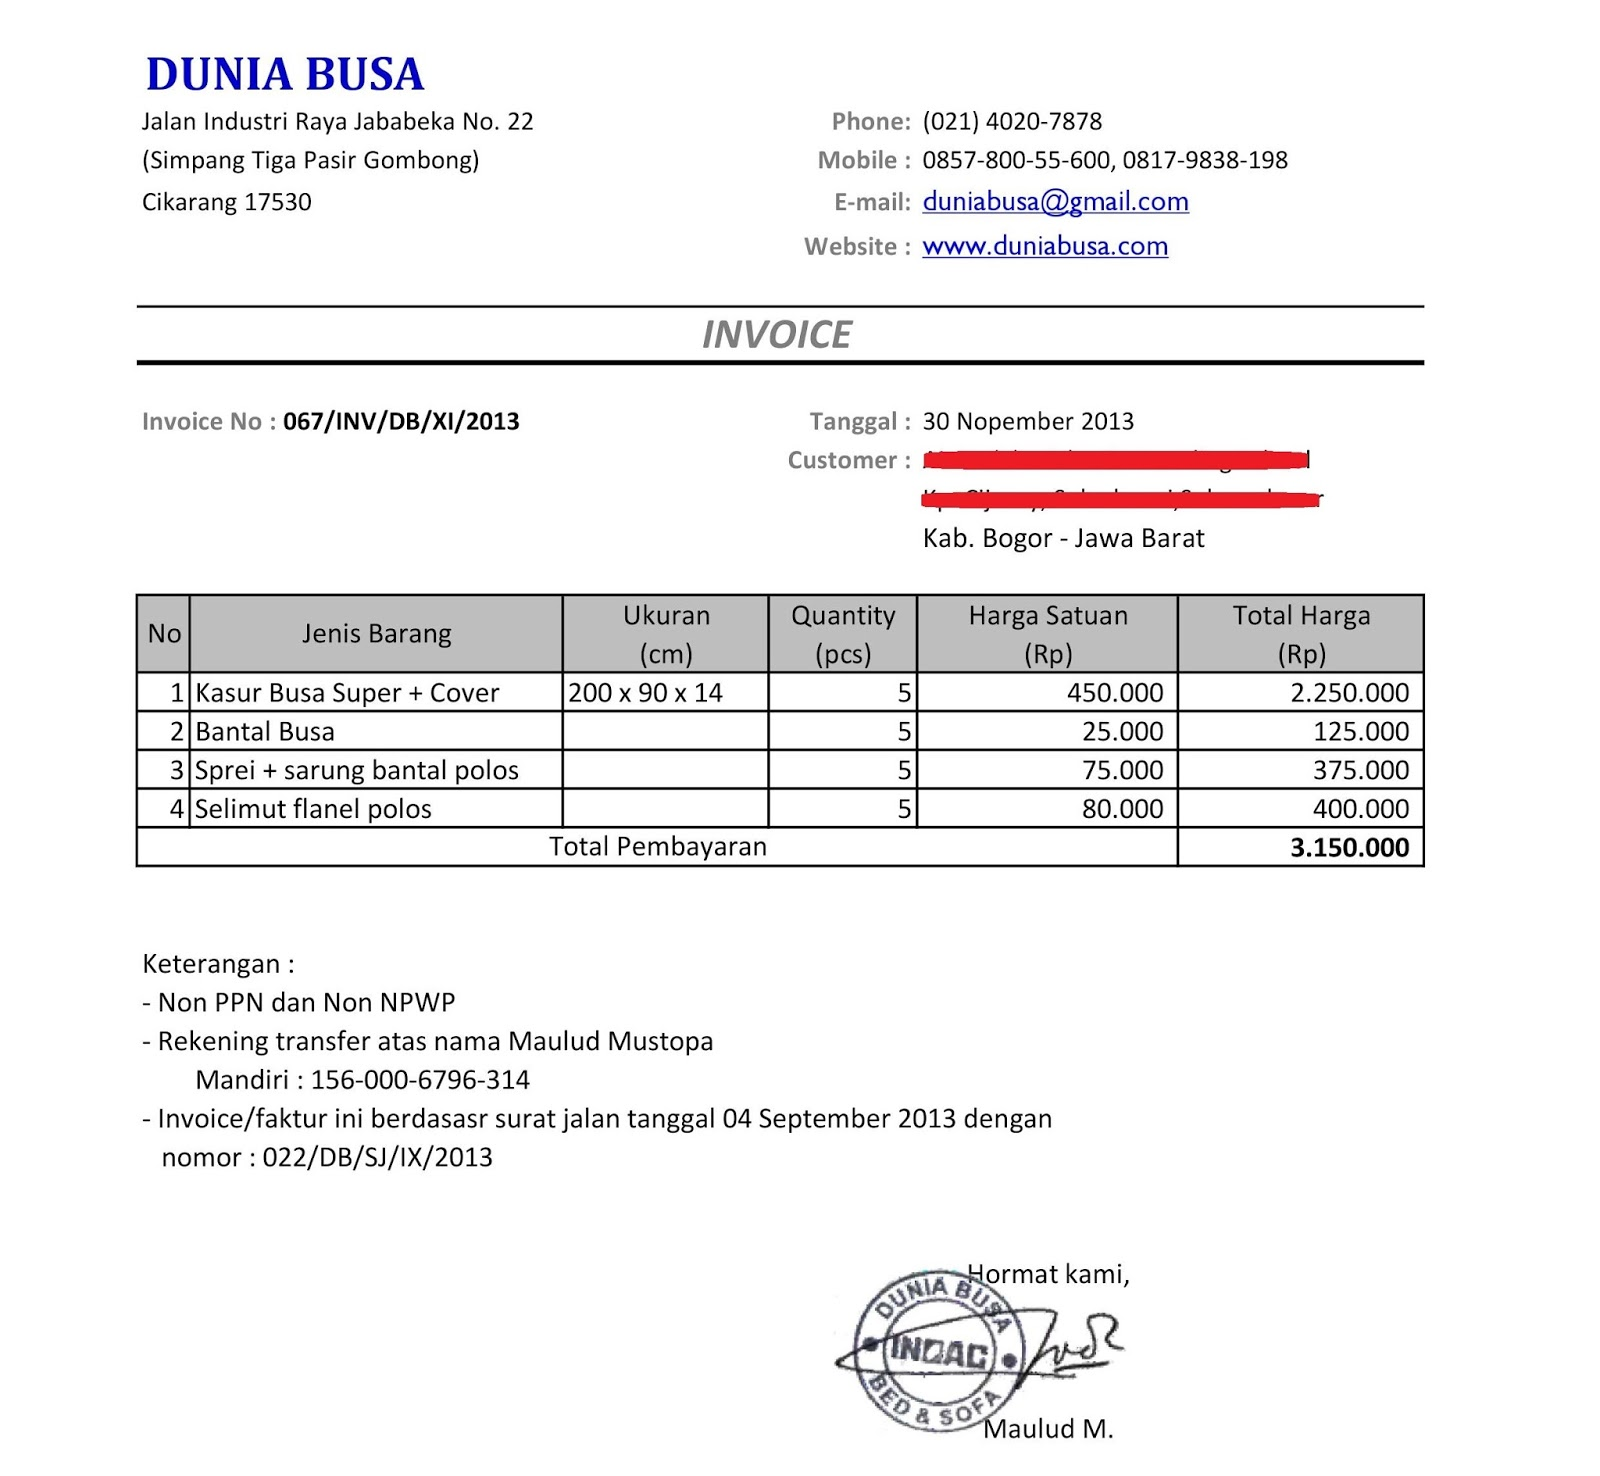 Bringjacobolivierhomeus  Stunning Free Invoice Online  Create Invoice Online  Invoice Template  With Luxury Contoh Format Invoice Atau Surat Tagihan  Brankas Arsip  Free Invoice Online With Archaic Invoice Form Free Printable Also Finding Invoice Price On New Cars In Addition Free Invoice Templets And Mazda Cx  Dealer Invoice As Well As Invoice Template Photography Additionally Mechanic Invoice Software From Sklepco With Bringjacobolivierhomeus  Luxury Free Invoice Online  Create Invoice Online  Invoice Template  With Archaic Contoh Format Invoice Atau Surat Tagihan  Brankas Arsip  Free Invoice Online And Stunning Invoice Form Free Printable Also Finding Invoice Price On New Cars In Addition Free Invoice Templets From Sklepco